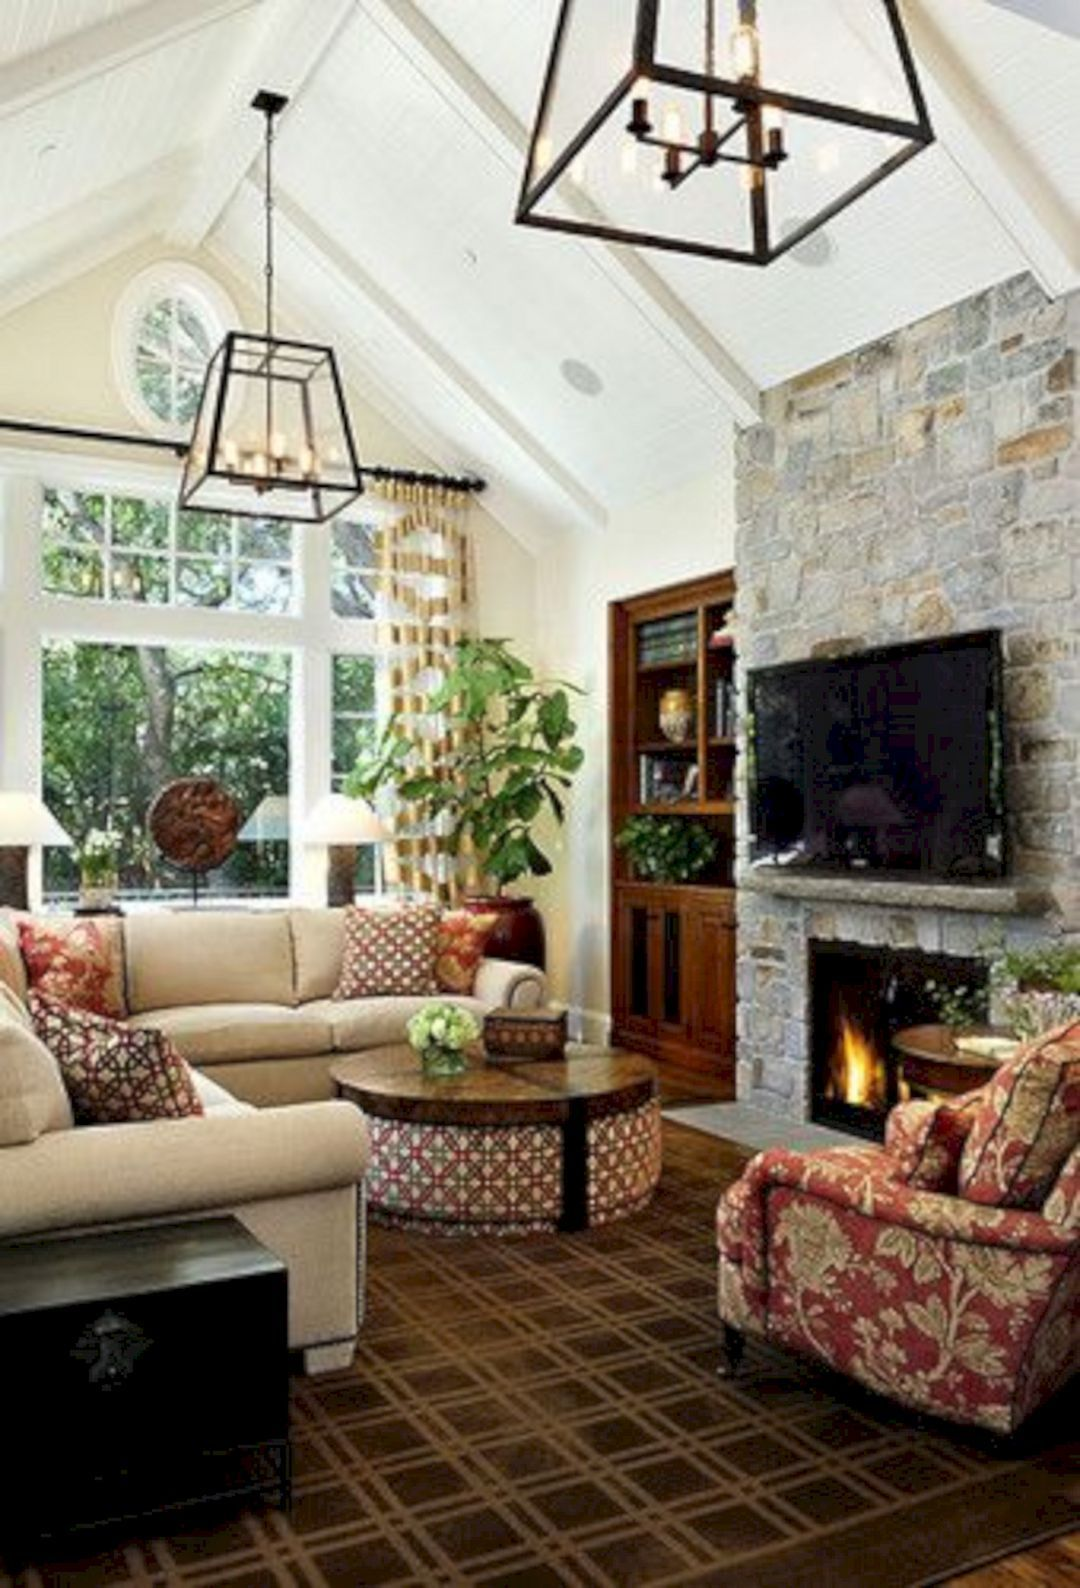 22 Gorgeous Small Keeping Room with Fireplace Ideas For More Fun Live #vaultedceilingdecor